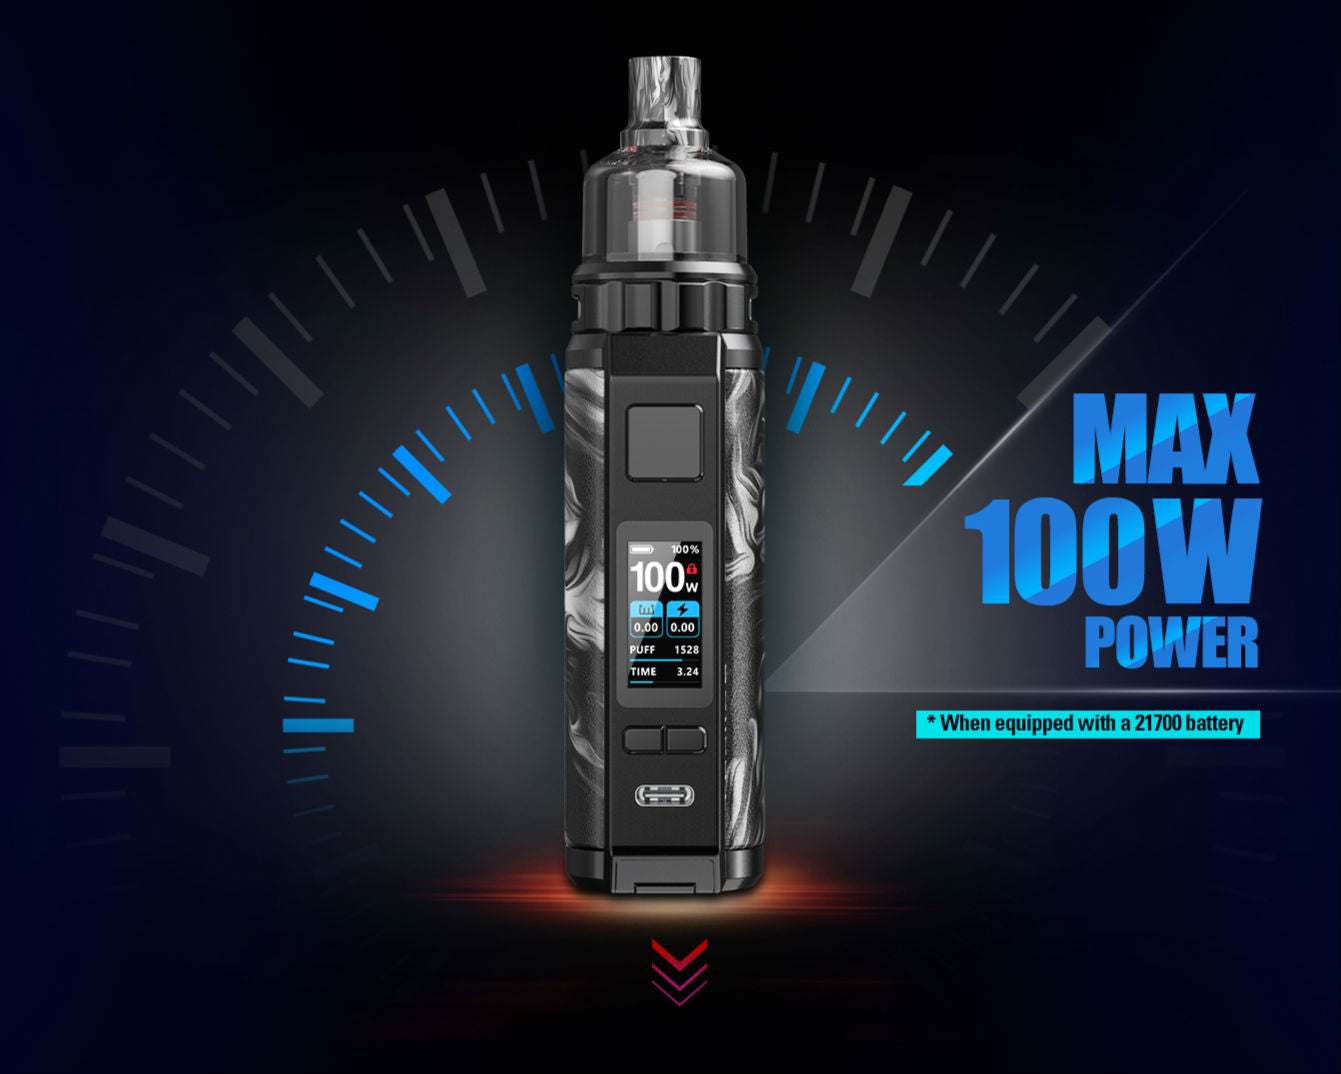 Switch to a 21700 battery for increased performance up to 100w